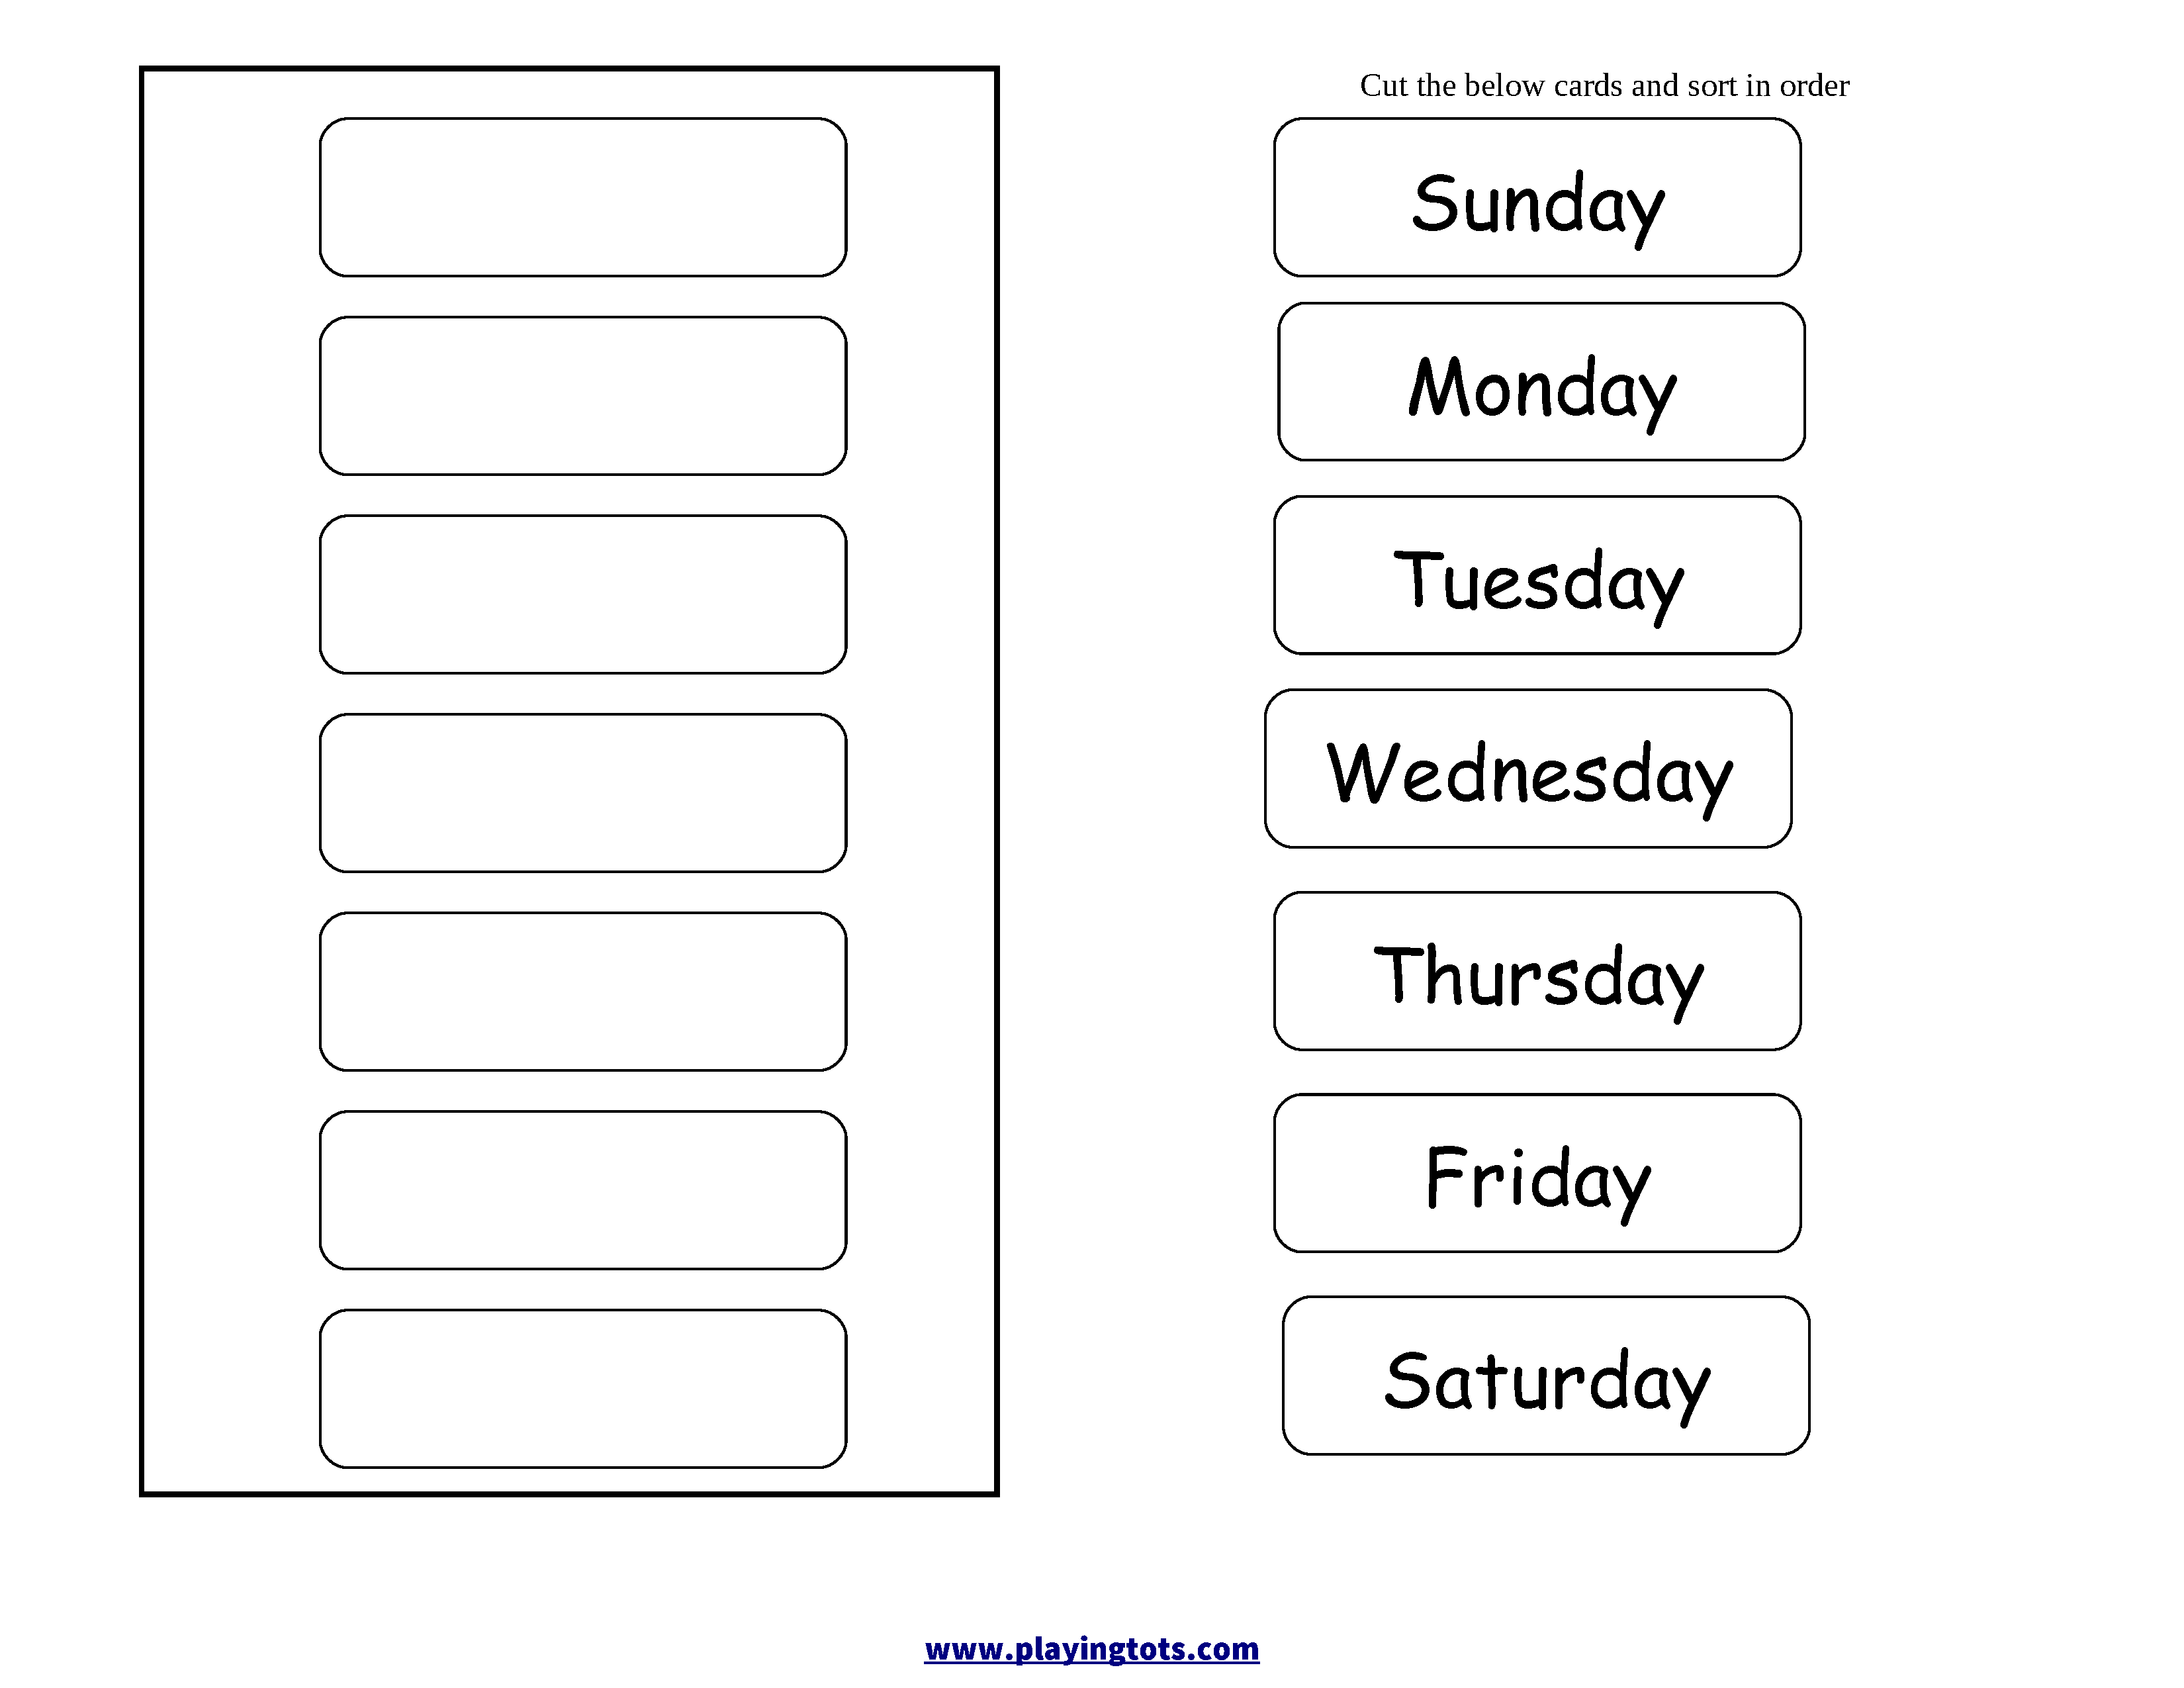 Order Days Of The Week